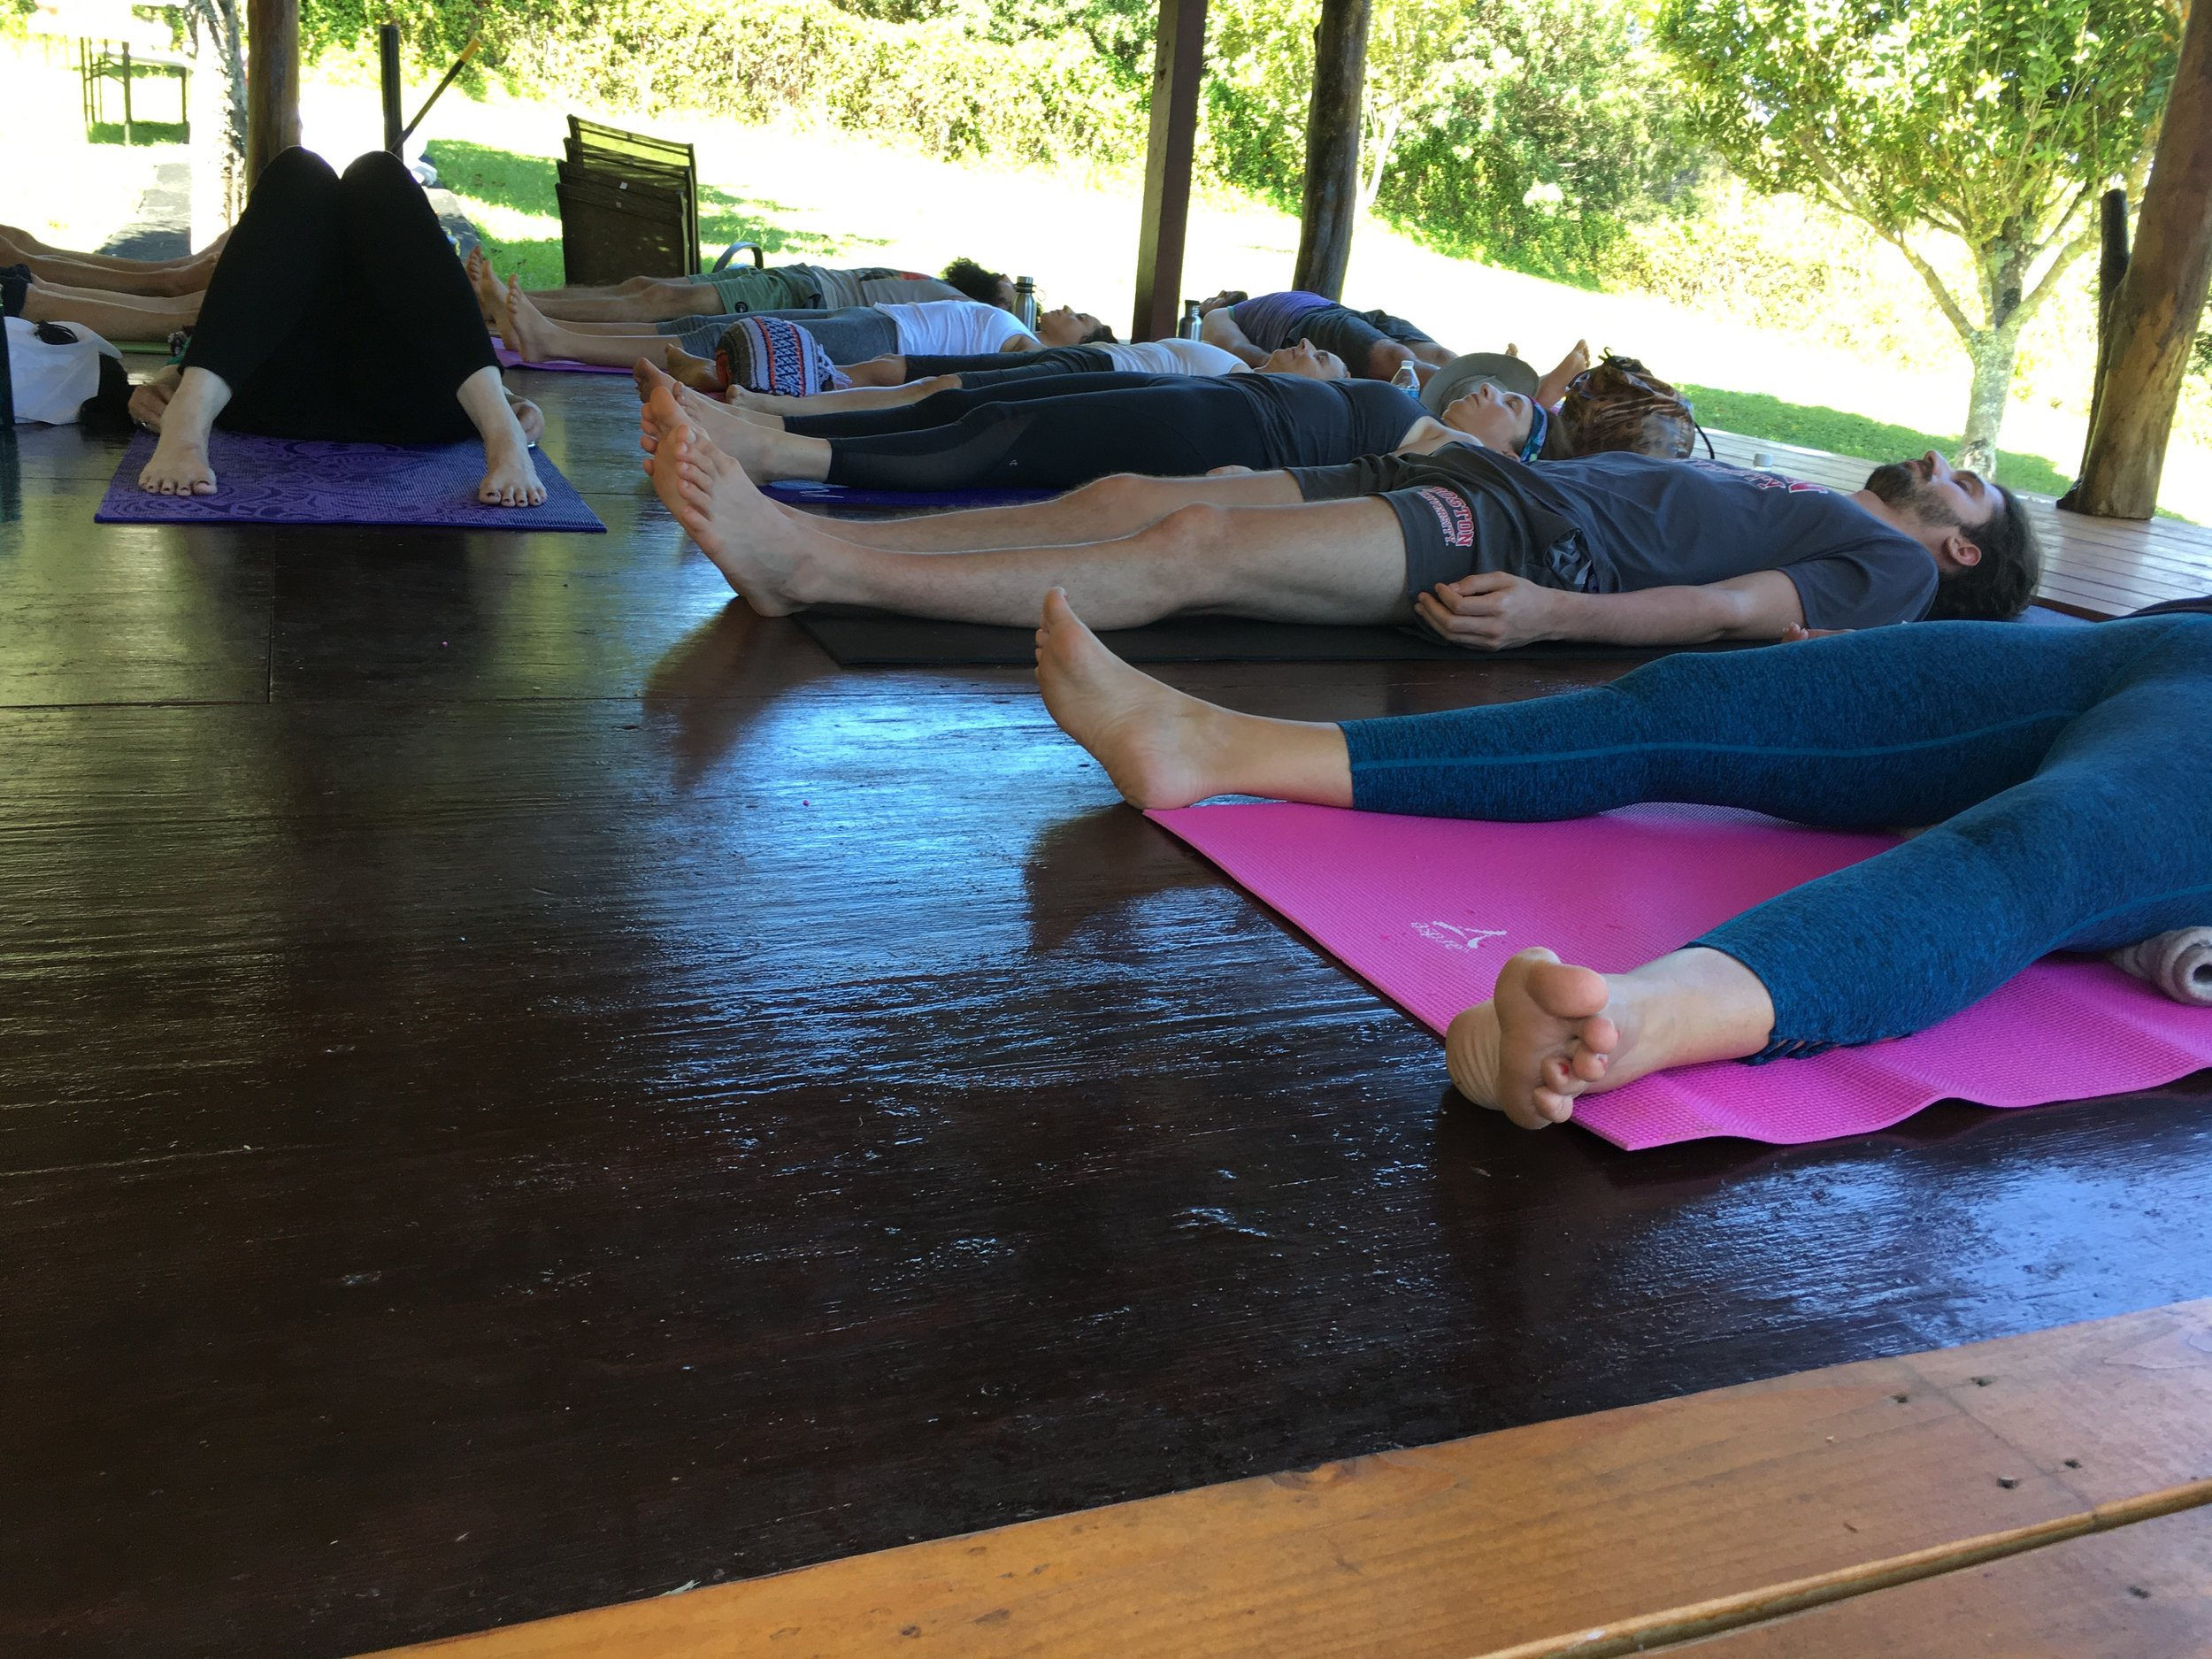 Yogic rest enables the body to integrate movement.